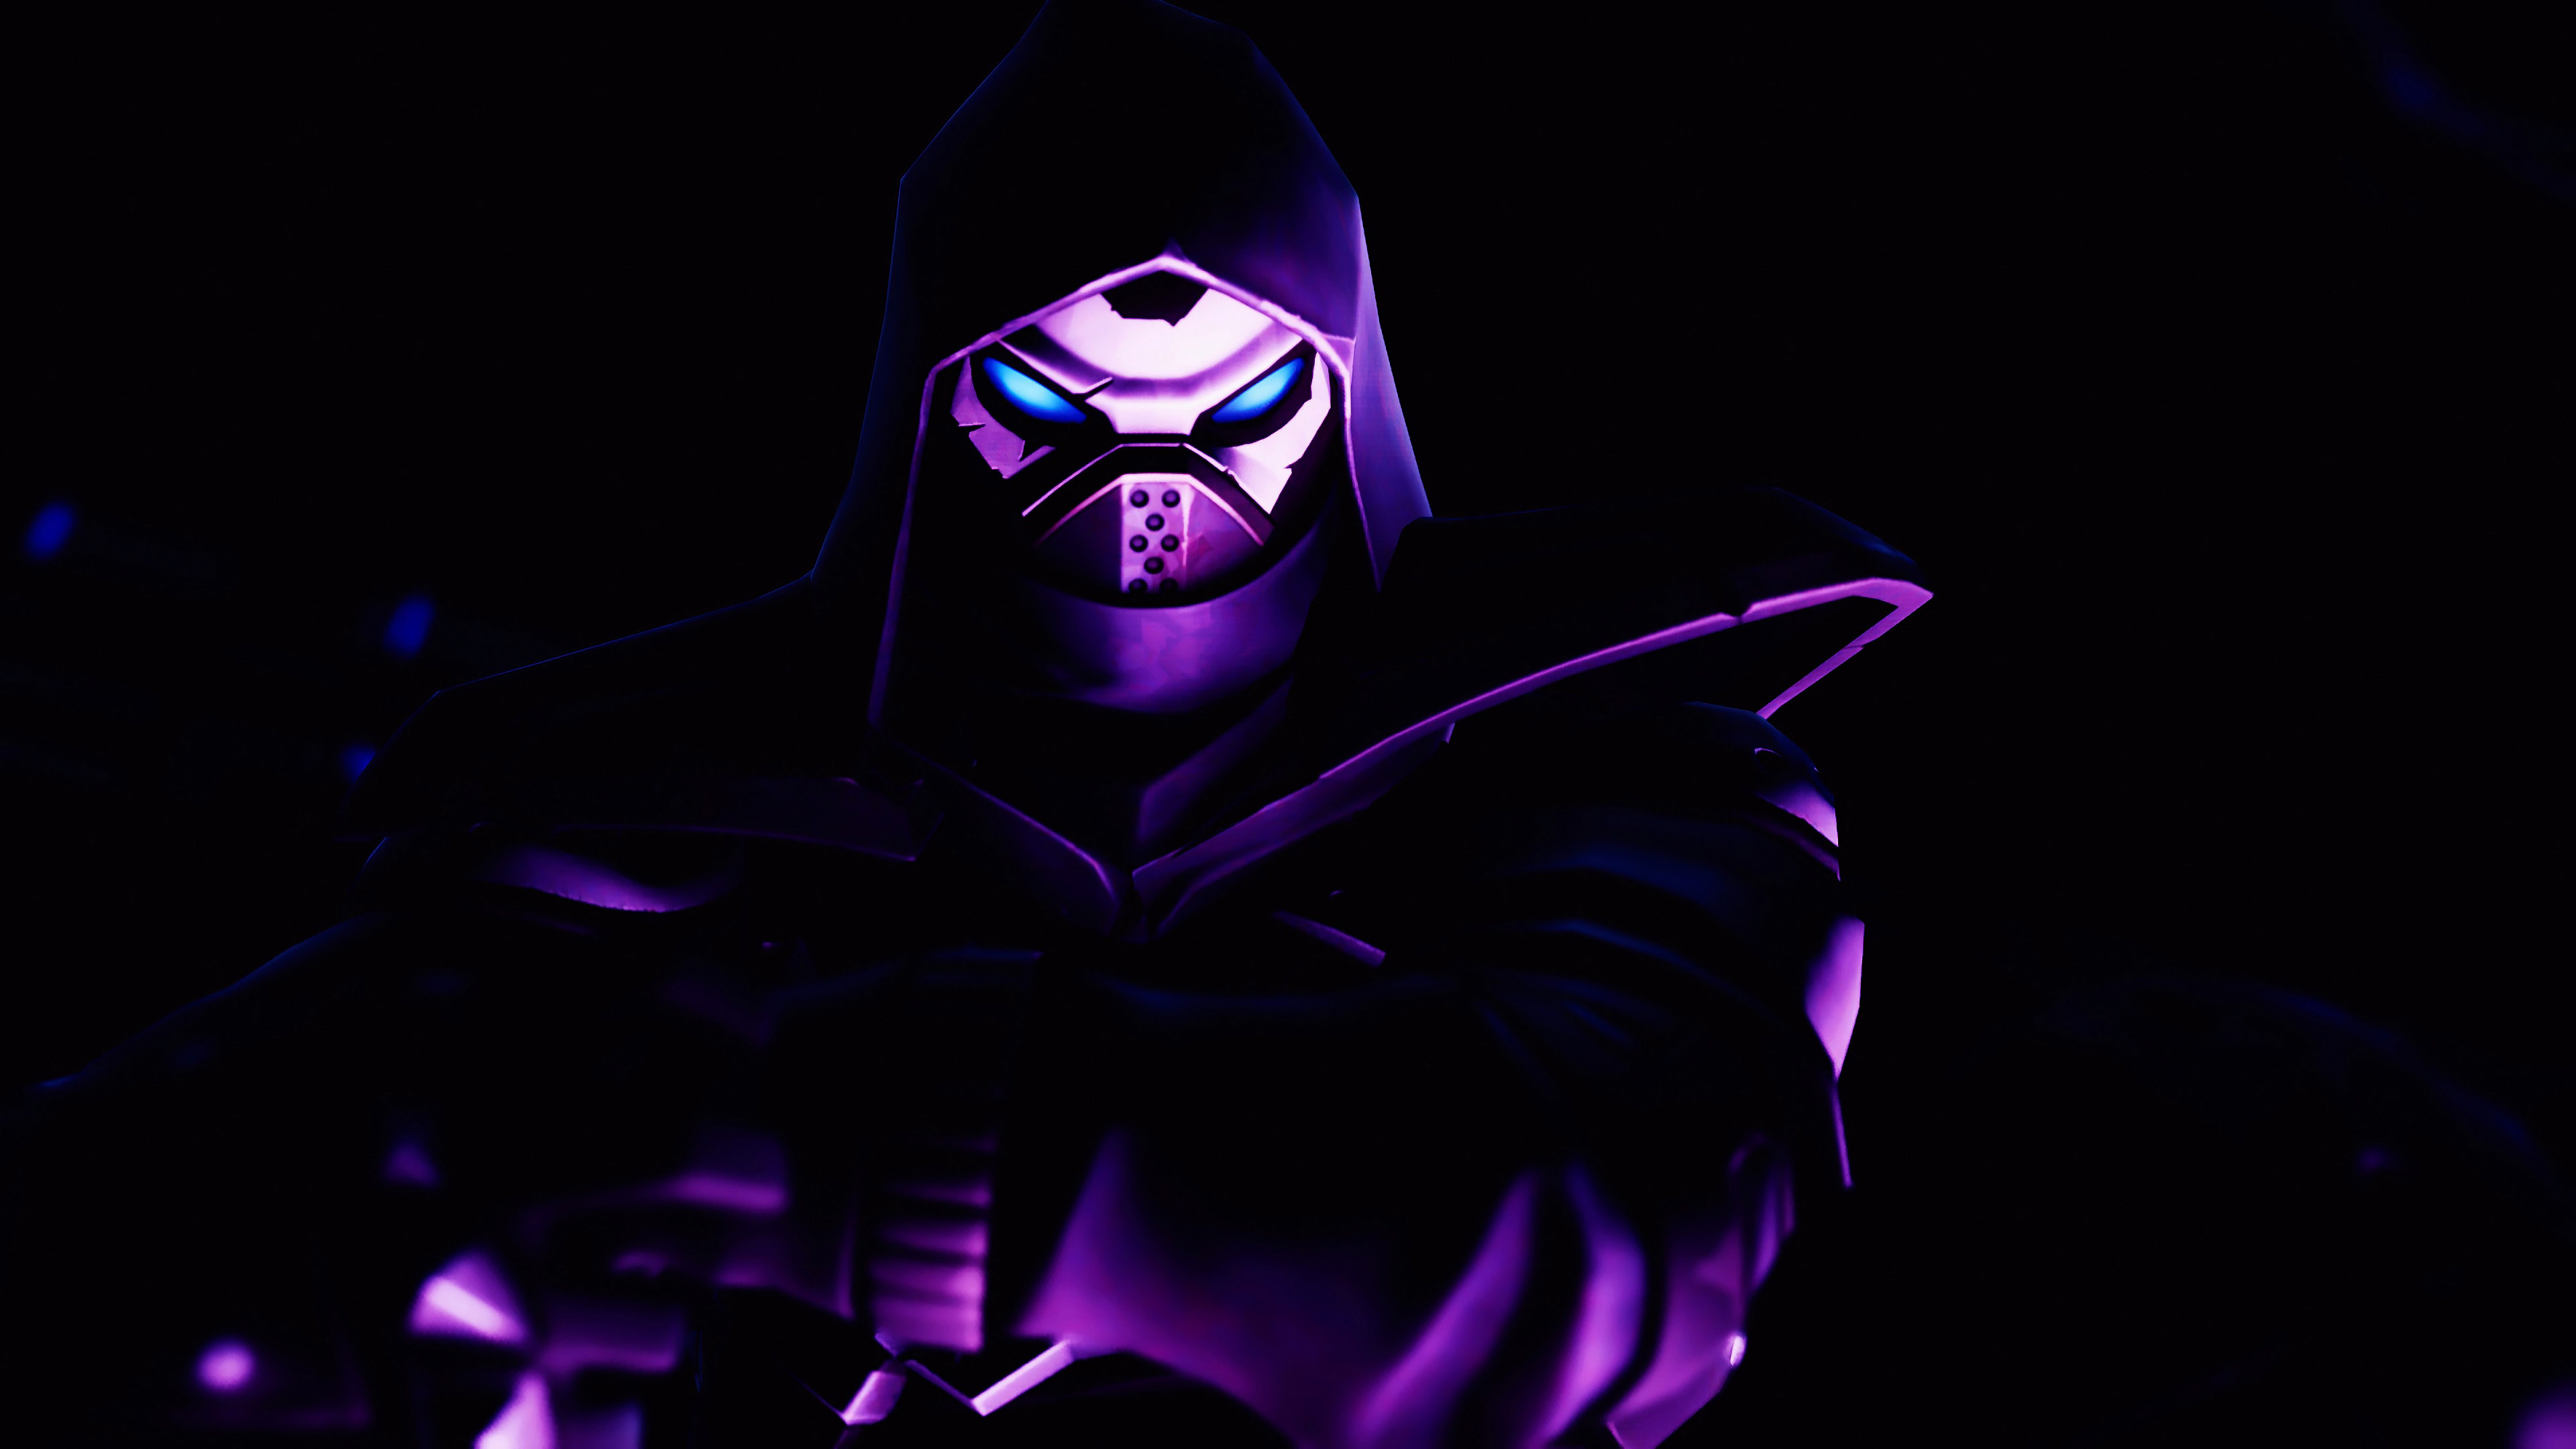 Wallpaper Fortnite Enforcer